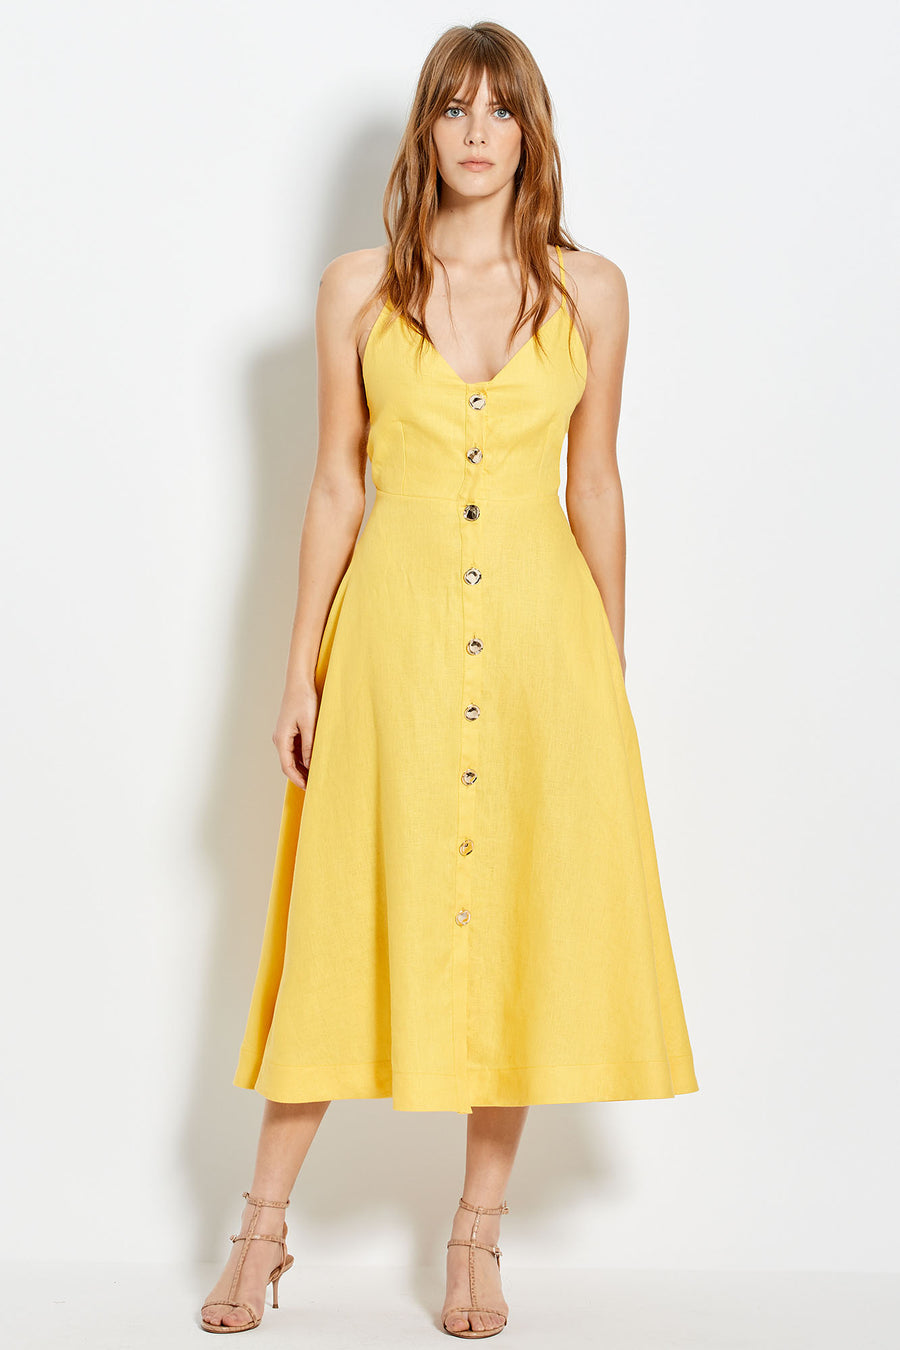 Orissa Dress - Sunflower